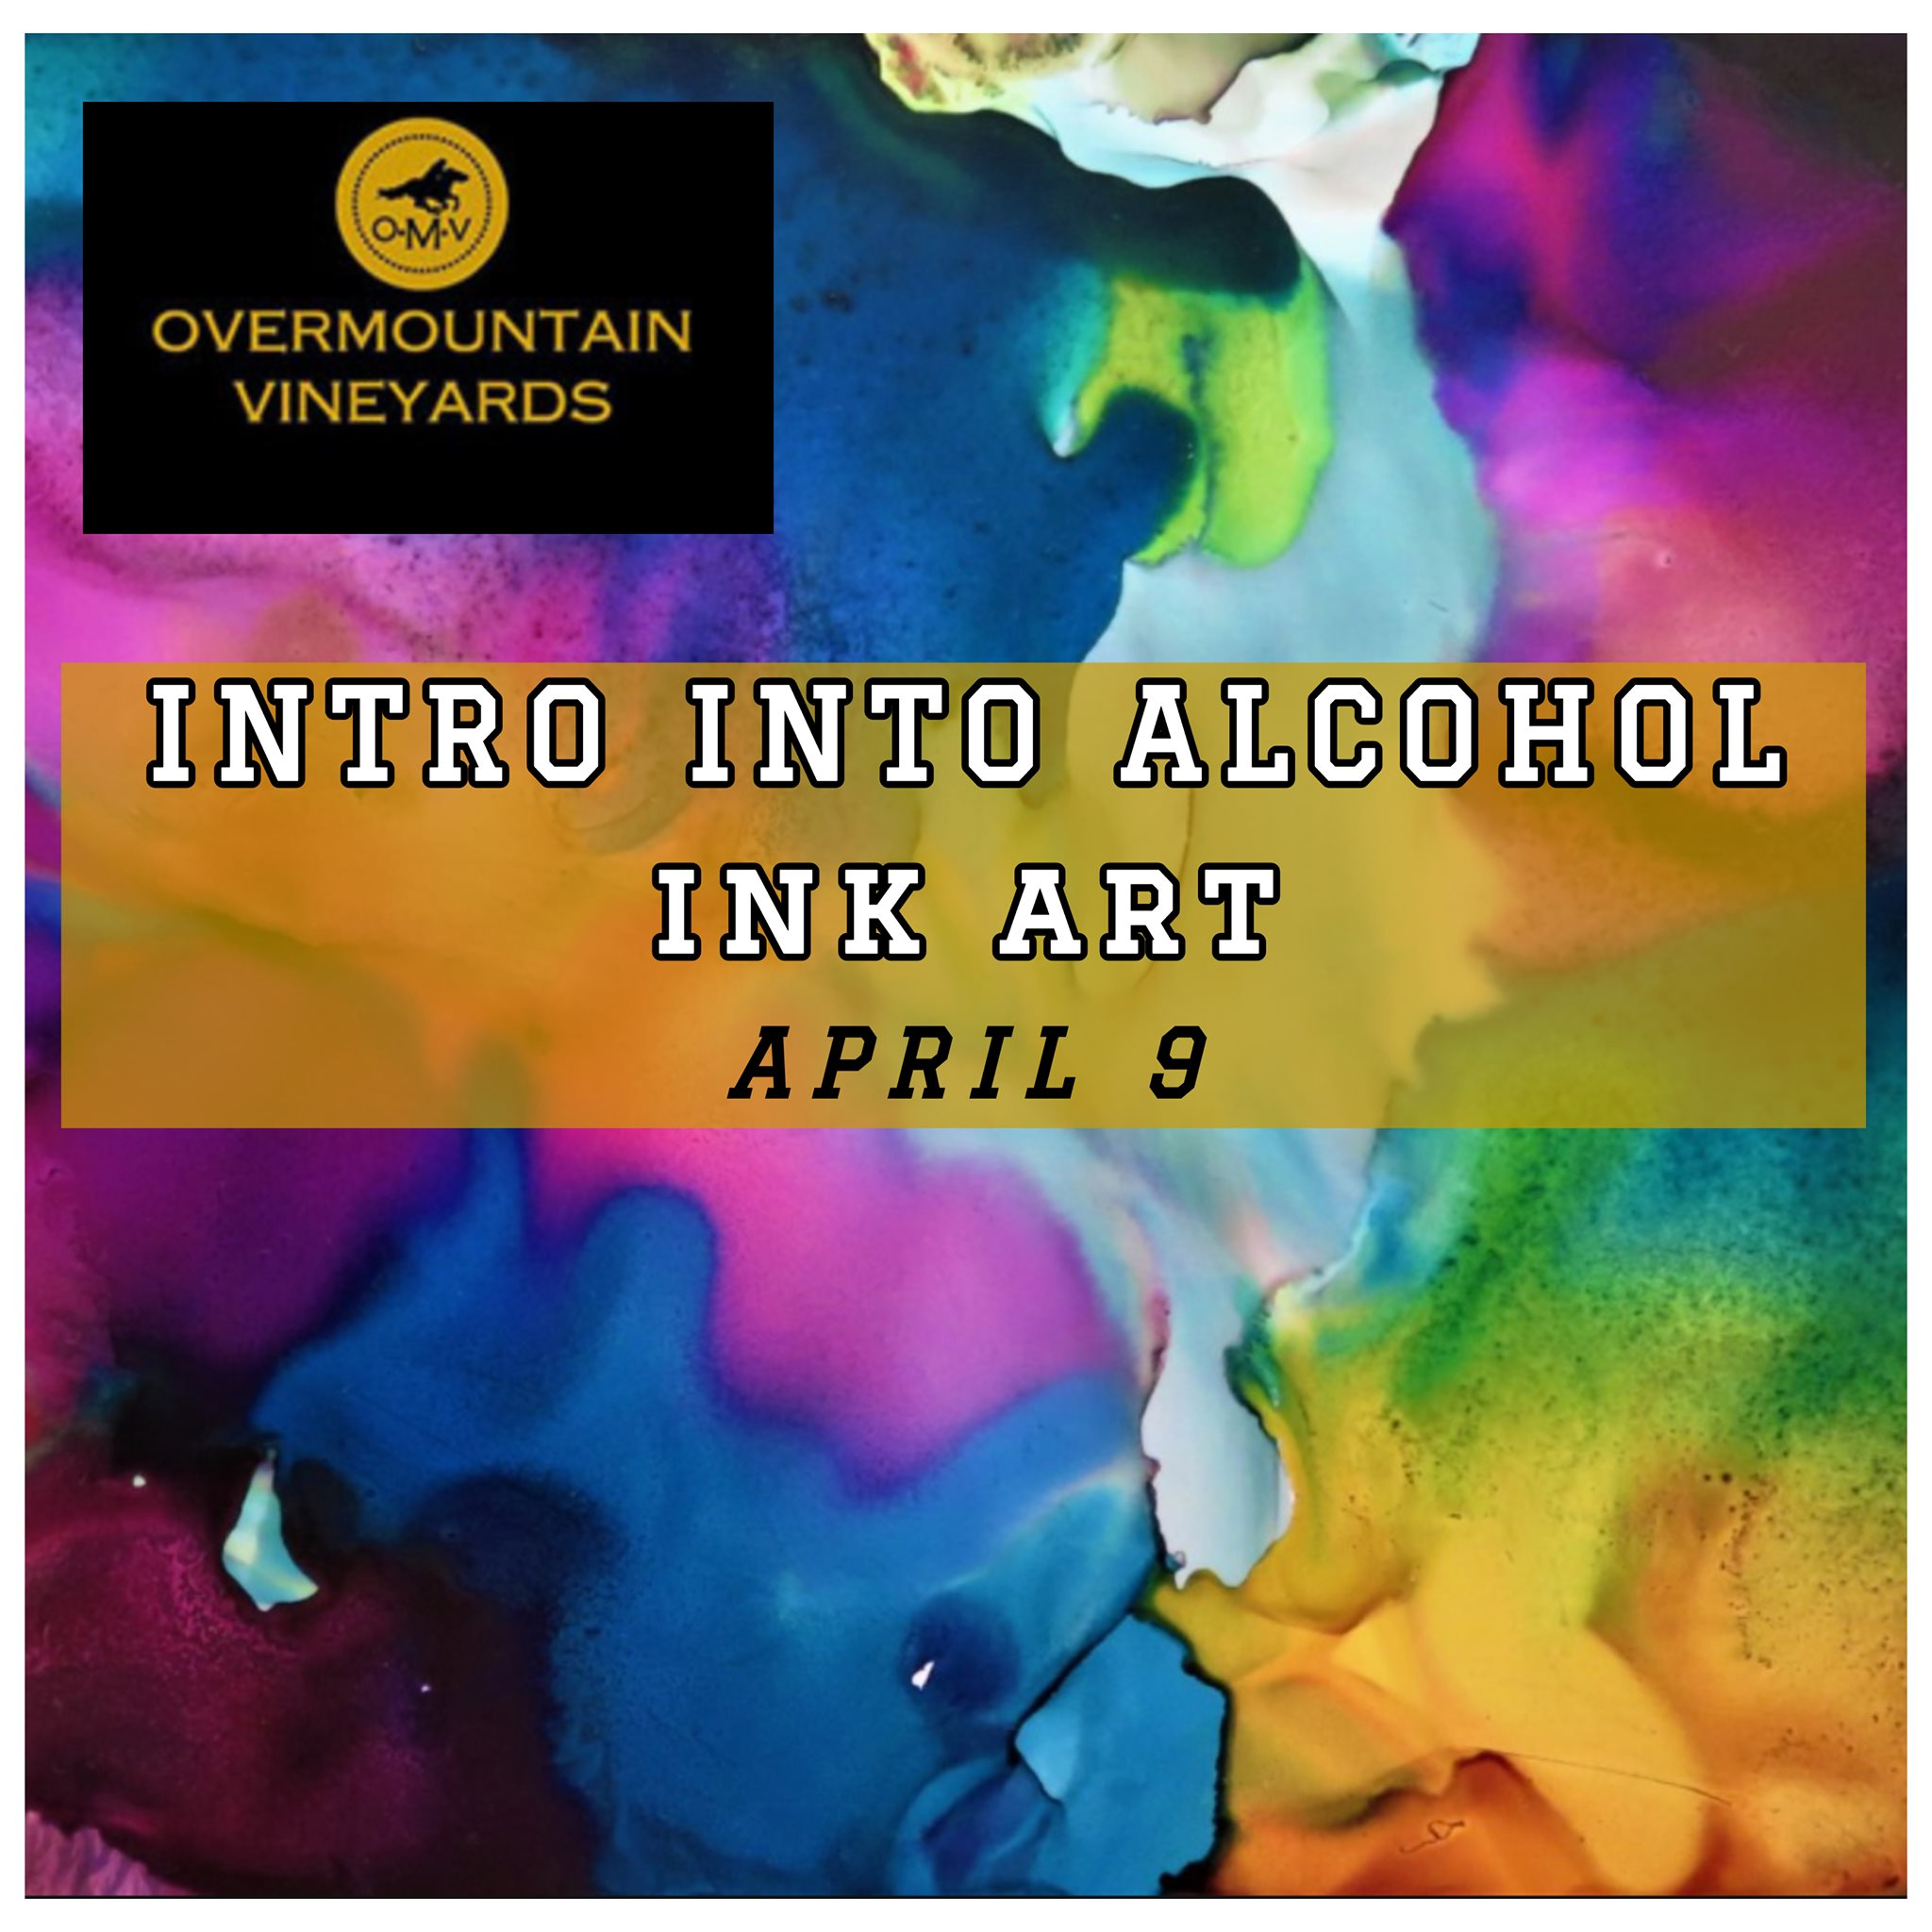 Intro to Alcohol Ink at Overmountain Vineyards